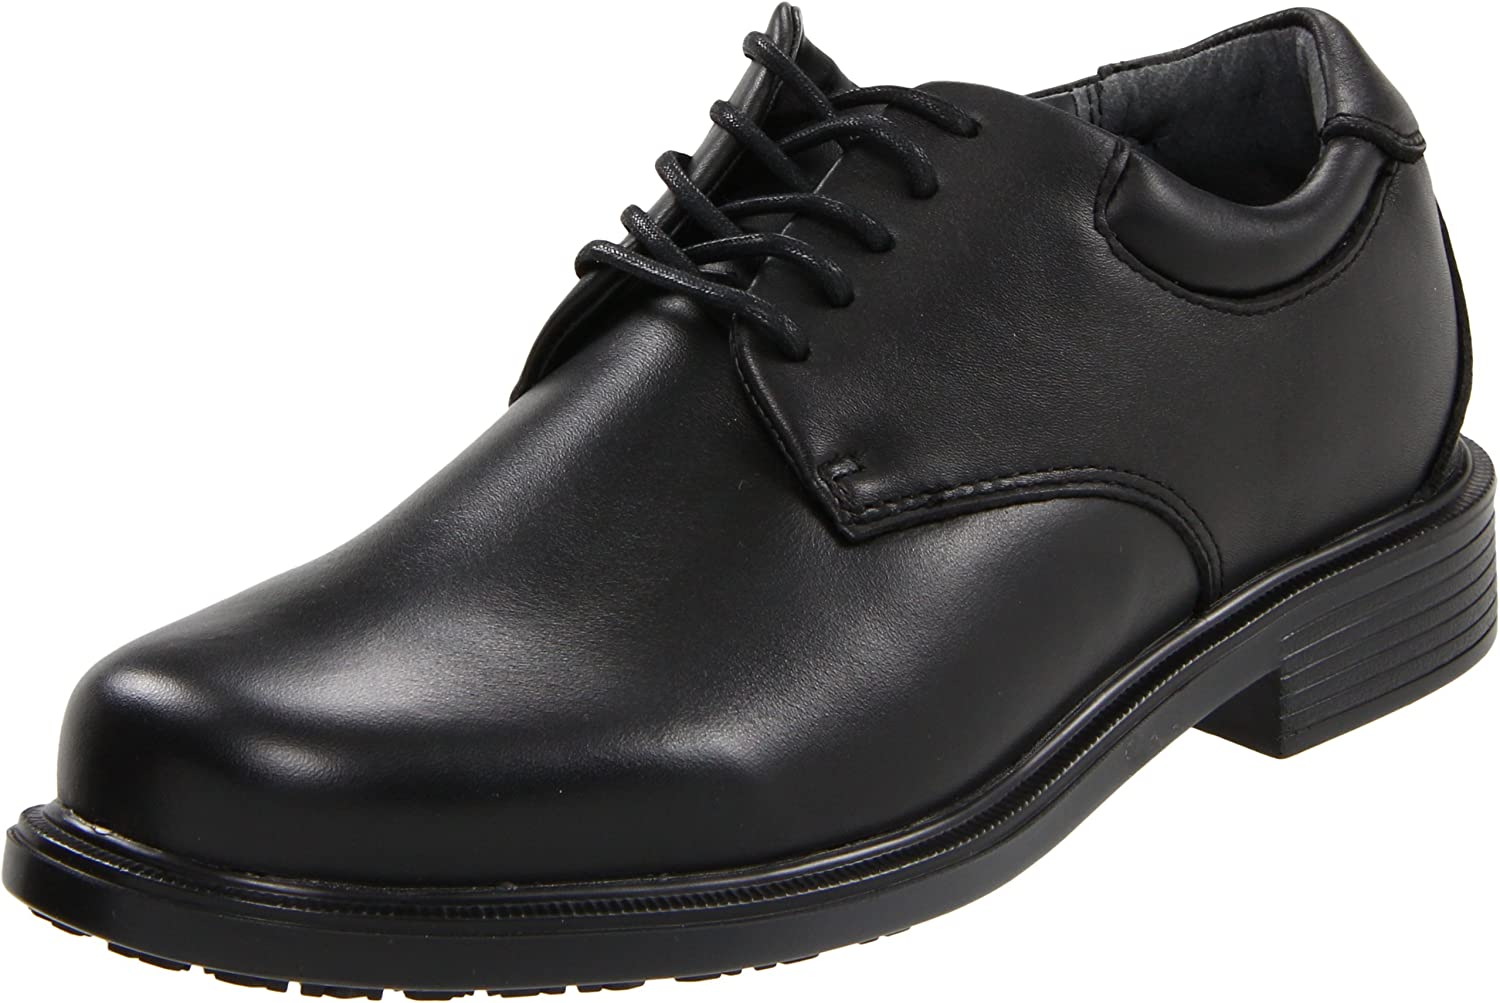 Rockport Limited price Work Men's Shoe RK6522 High quality new